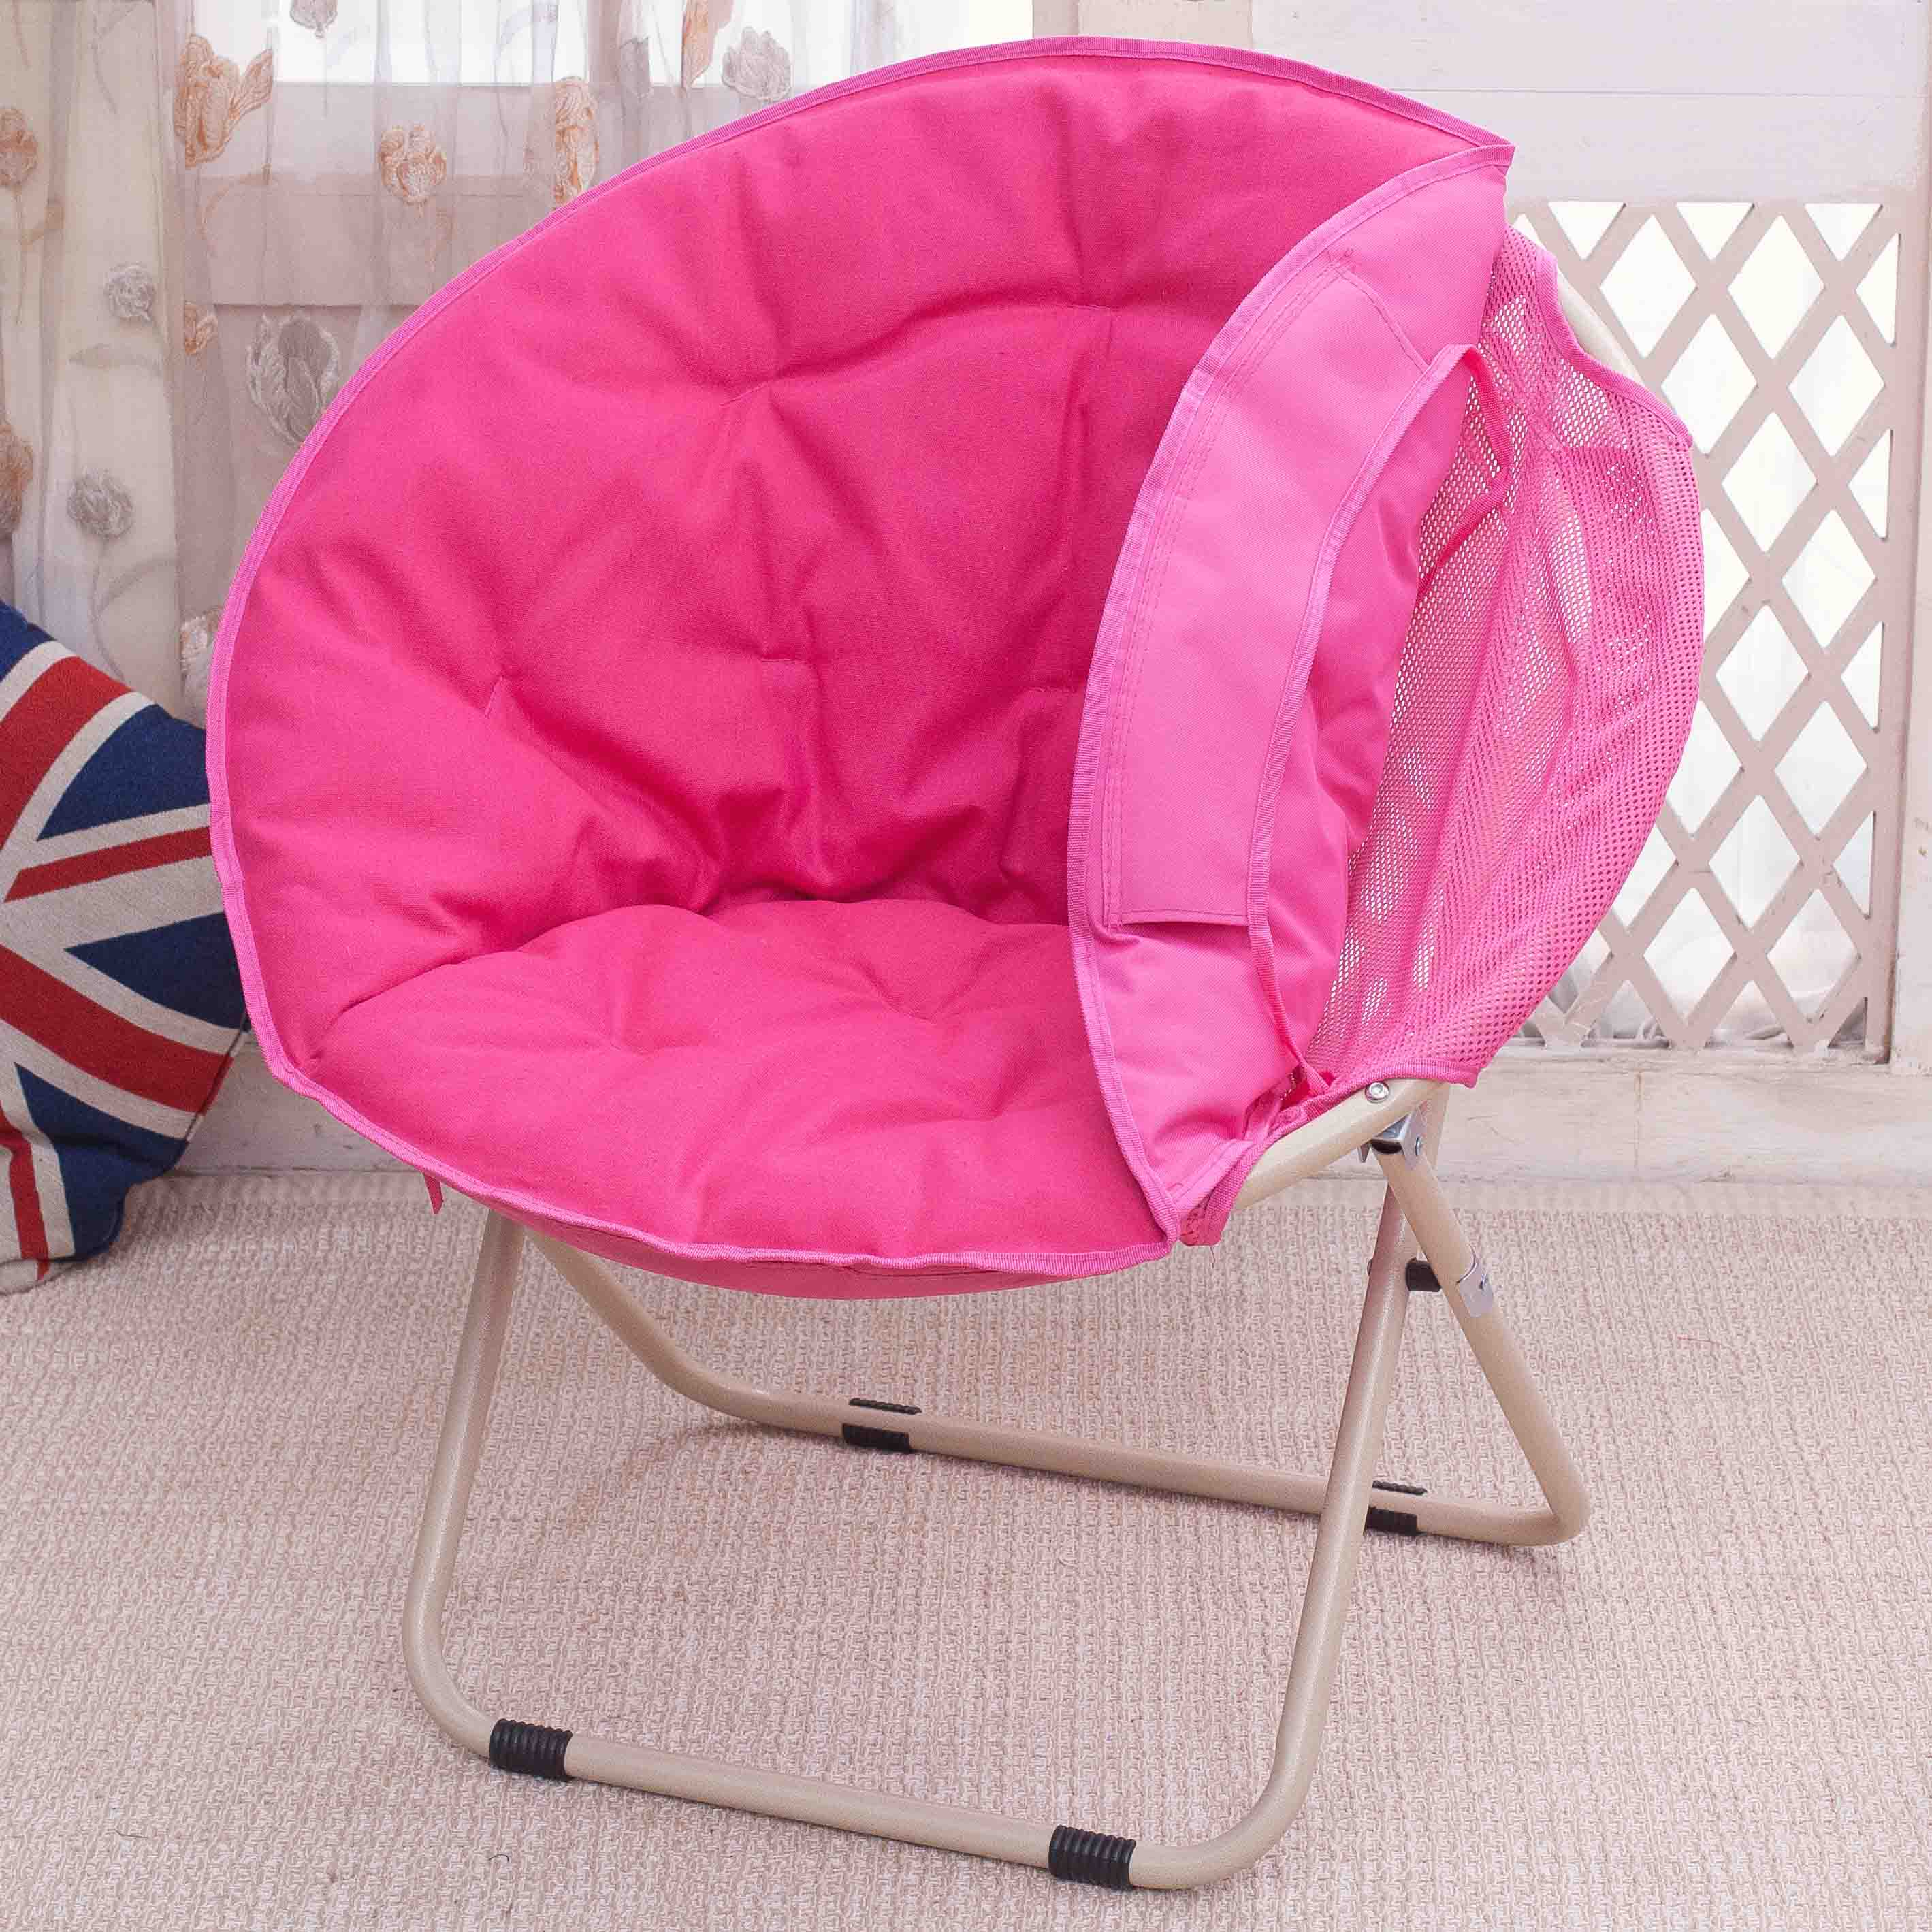 Large Moon Chairs Sun Lounger Lazy Chair Radar Recliner Folding Chair Sofa Back Chair With Removable Cover